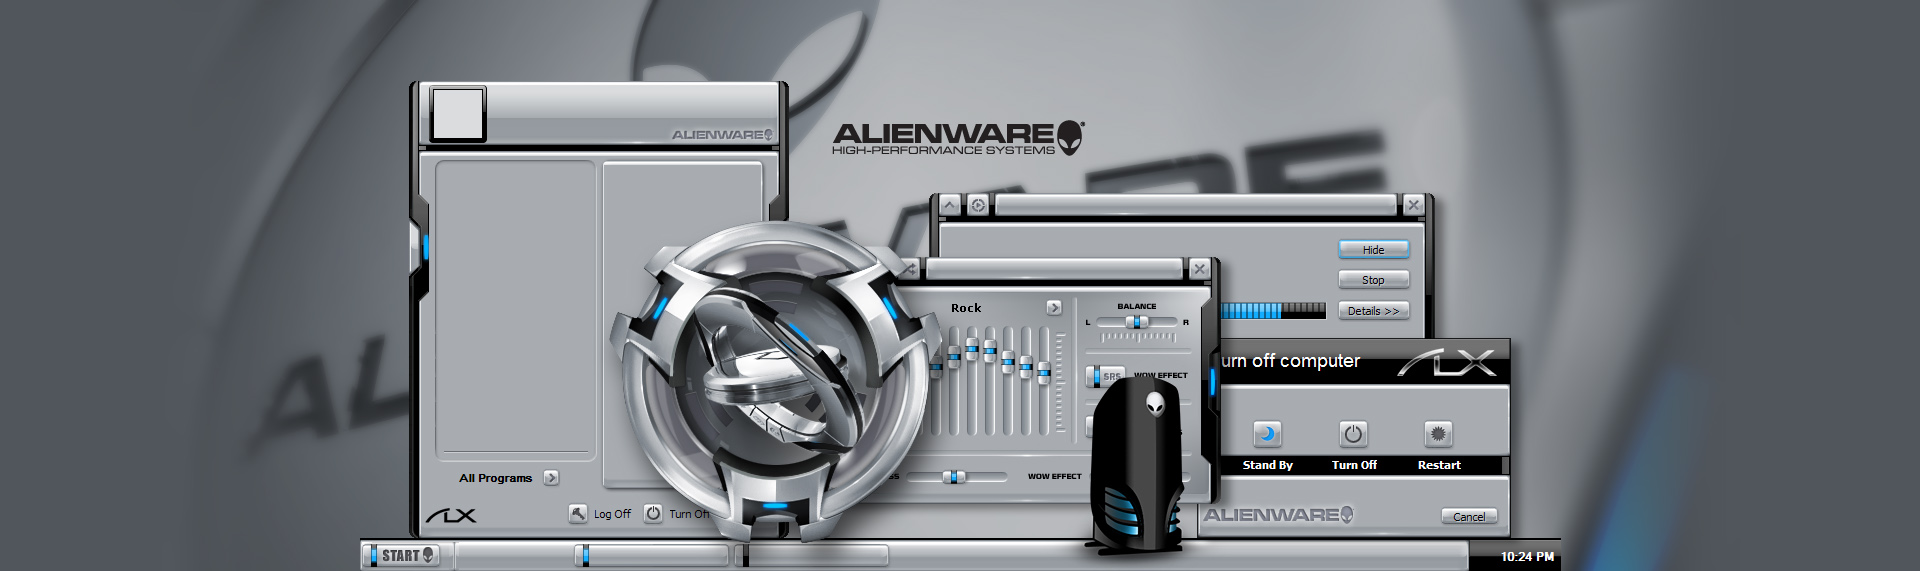 Alienware ALXMorph  Client: Alienware Corporation  Alienware Corporation and The Skins Factory designed the mega-popular Alienware ALXMorph Skin Suite. Suite includes an animated Windows Media Player skin, icons and a custom desktop wallpaper. Alienware has logged more than 2.5 million downloads (in the first year) of AlienMorph & ALXMorph desktop themes off their web servers, proving once again the power of desktop customization. Copyright. Alienware. All Rights Reserved.